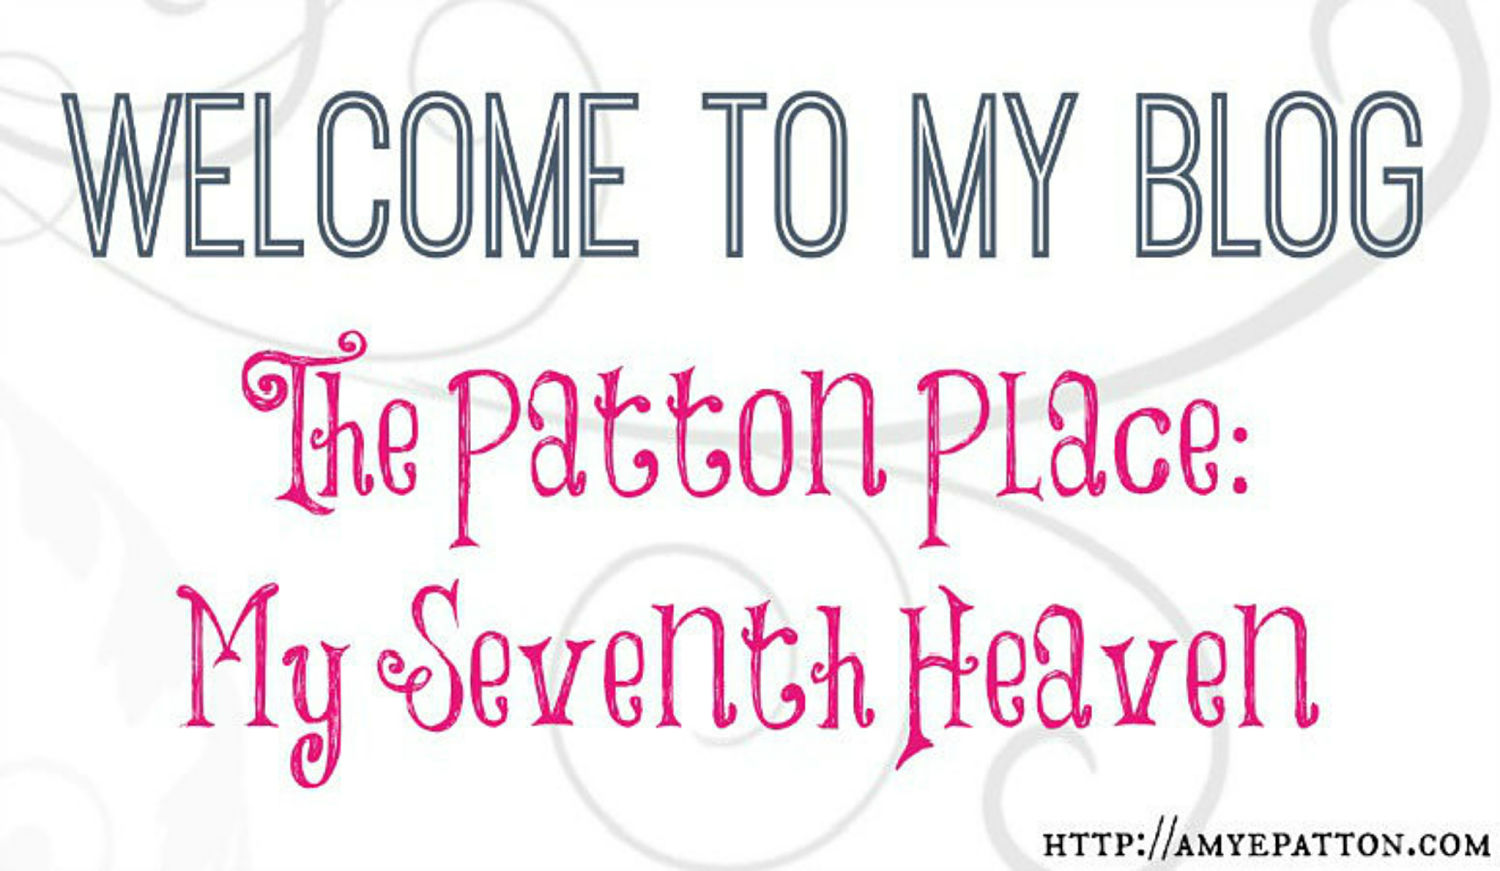 Welcome to The Patton Place blog